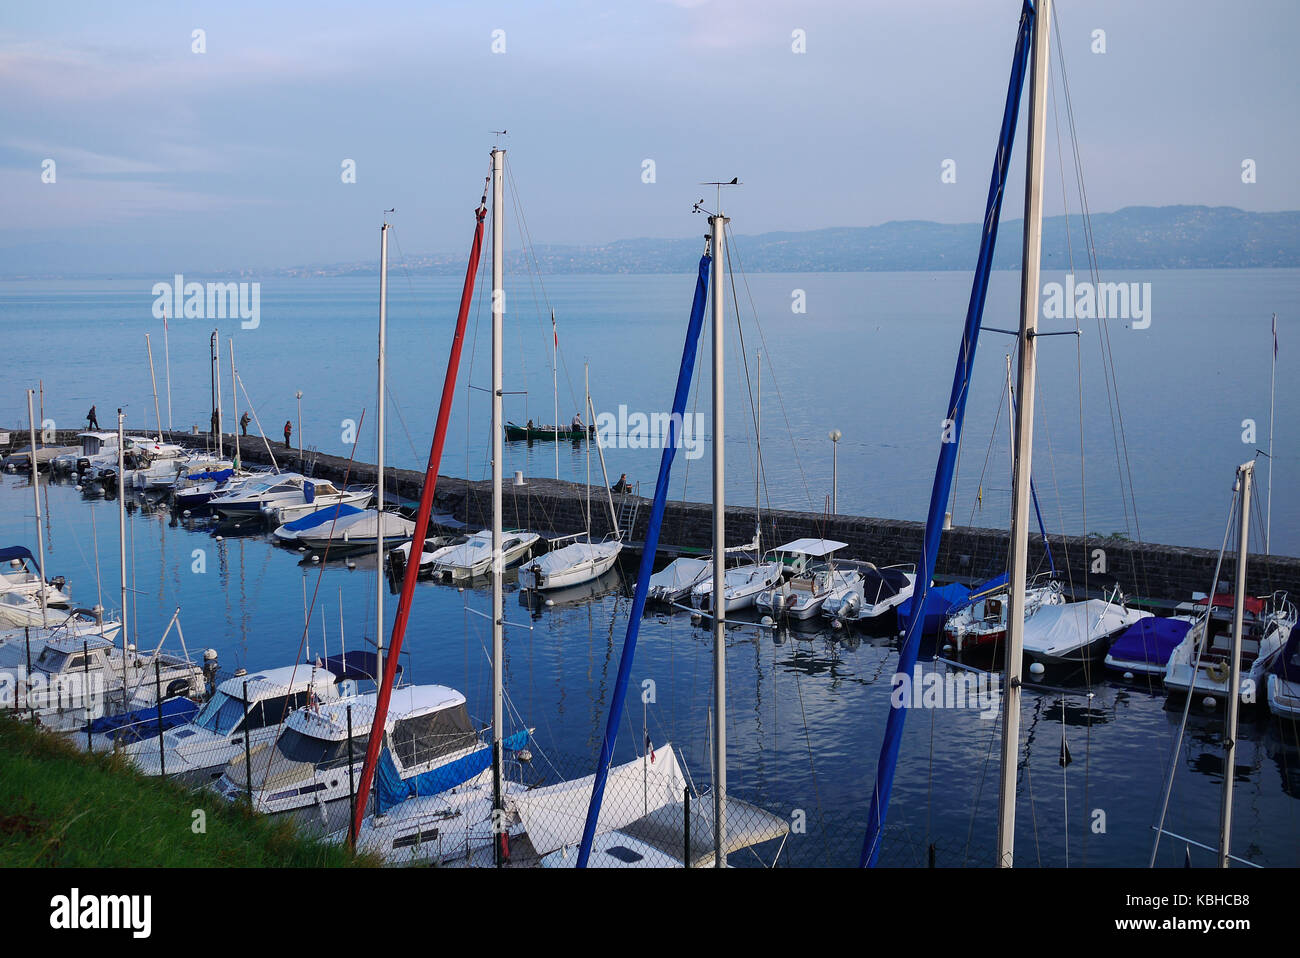 Pleasance harbor at sunset, in Meillerie, Leman Lake,, Savoie, France - Stock Image